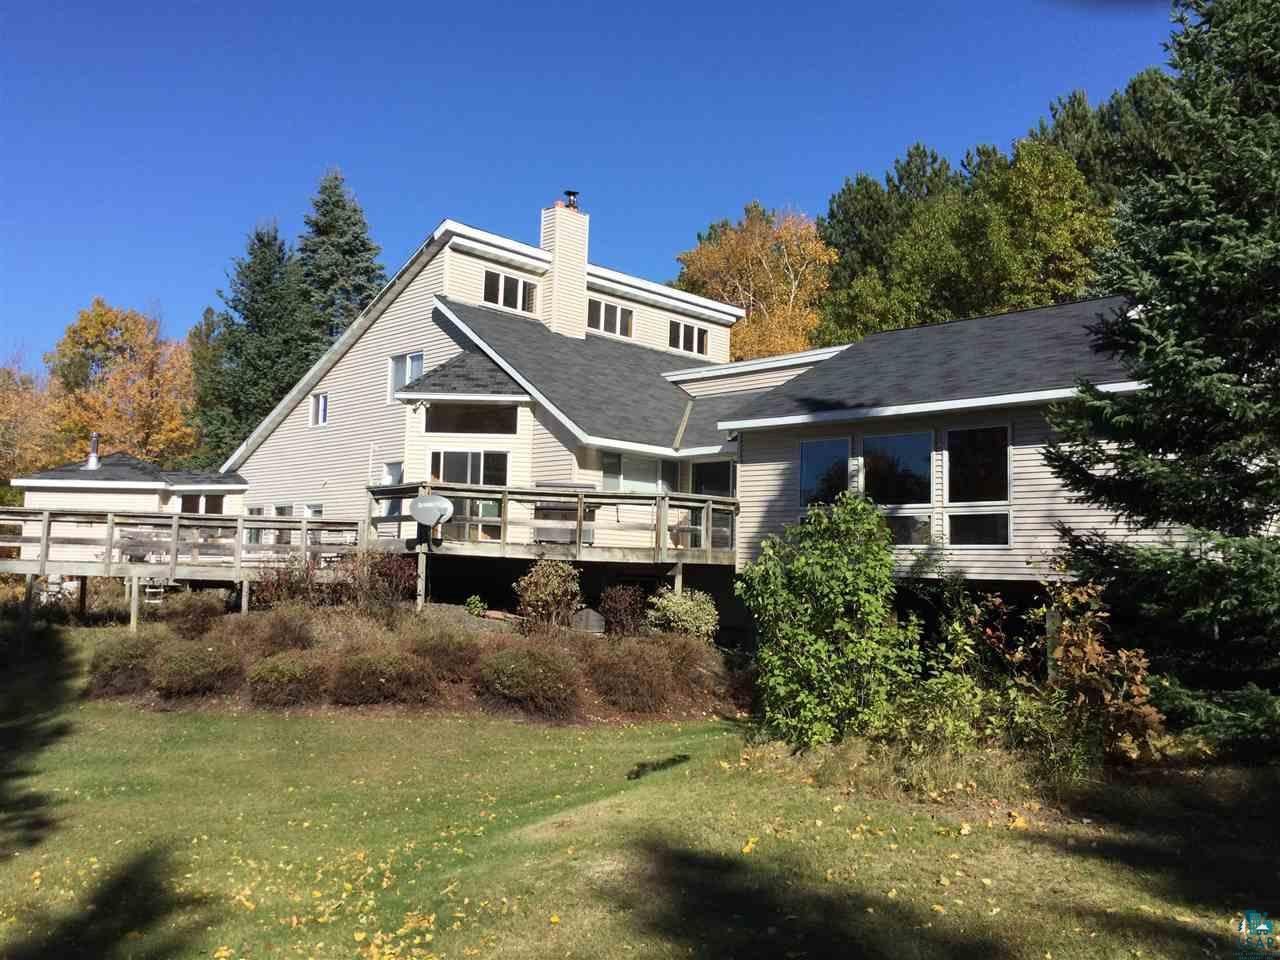 Spectacular west facing views of Lake Superior. Within about an hour driving distance from Superior, WI & Duluth, MN. This spacious home offers privacy located just outside Port Wing near Lake Superior & the Port Wing Marina on 30 forested acres. The main floor features an open living room/dining room/ kitchen, an added spacious family room with fireplace , second dining area & bar,a main bedroom, laundry room, attached two car garage, sauna & hot tub room, lots of closet space, & walk out decks. Gorgeous lake views from the second floor which features two bedrooms, an office space, & a bathroom.  The walkout basement features a bathroom, utility room, several rooms currently used as a bedroom, rec room, & den. The outside features gravel driveway, maintenance free exterior, decks, & fenced in gardens. There is  a large 26x 42 + 20 x 22 Pole Barn with two garage doors & a large sliding door, wood stove for heat, concrete floor, electricity, and a workshop area.  There is a 16 x 36 concrete pad with a shelter logic cover for RV storage.